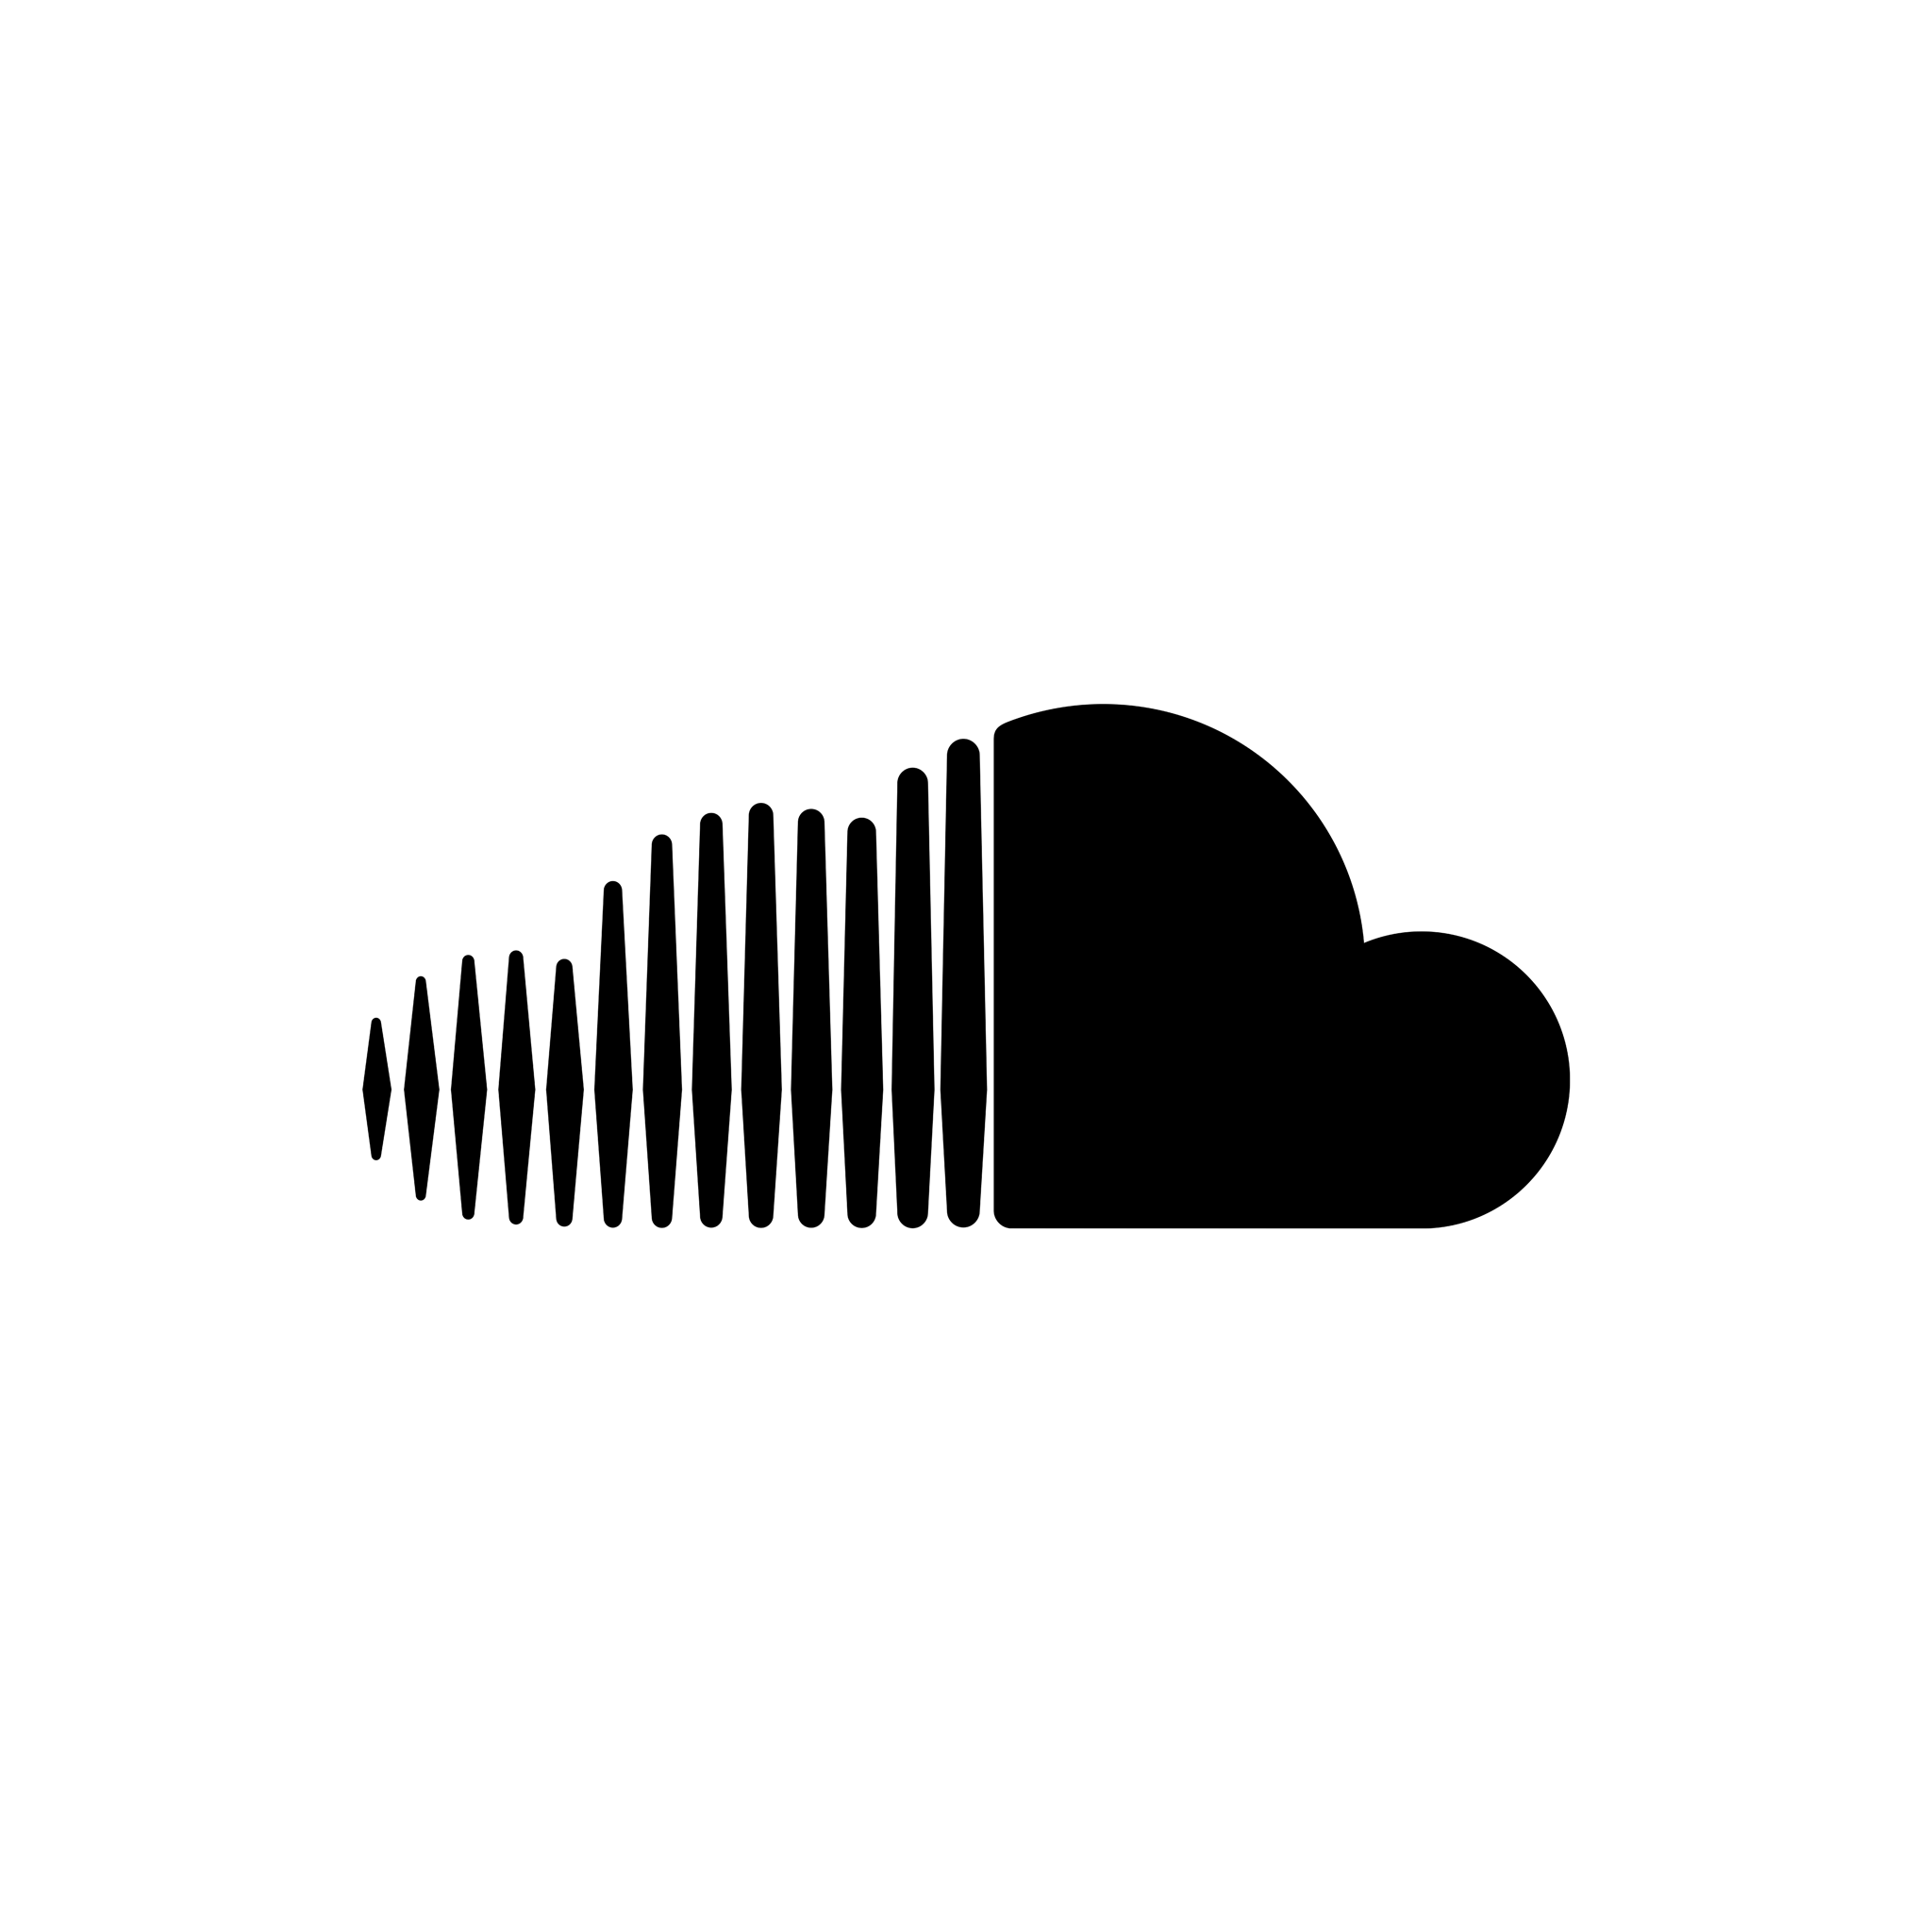 soundcloud,black